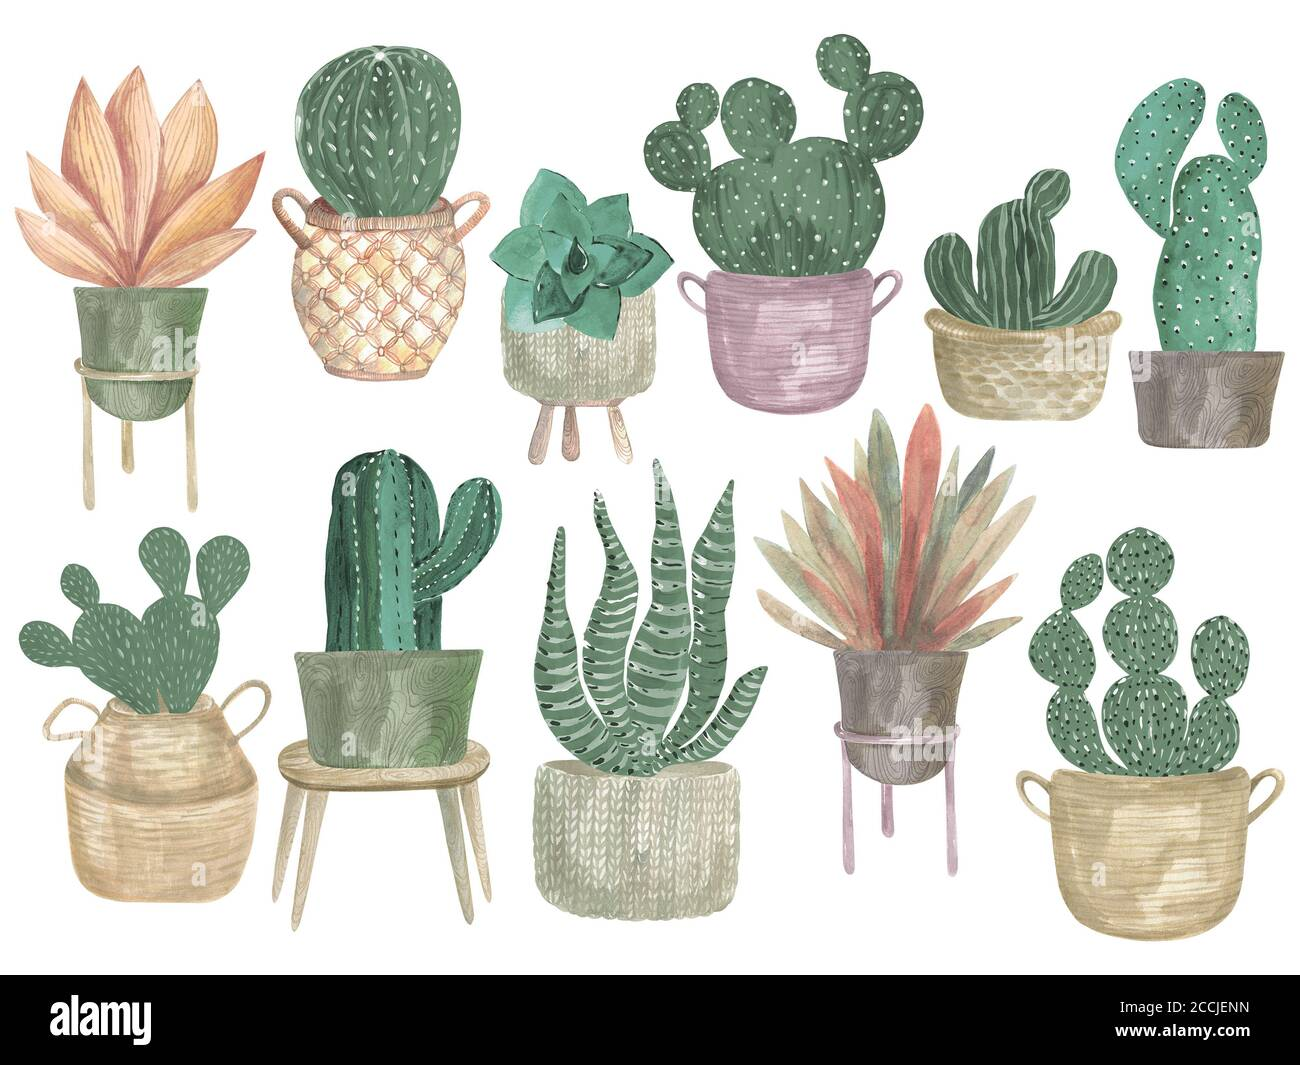 Watercolor Illustration Of A Collection Of Cacti In Pots Boho Decor Modern Indoor Plants Stock Photo Alamy